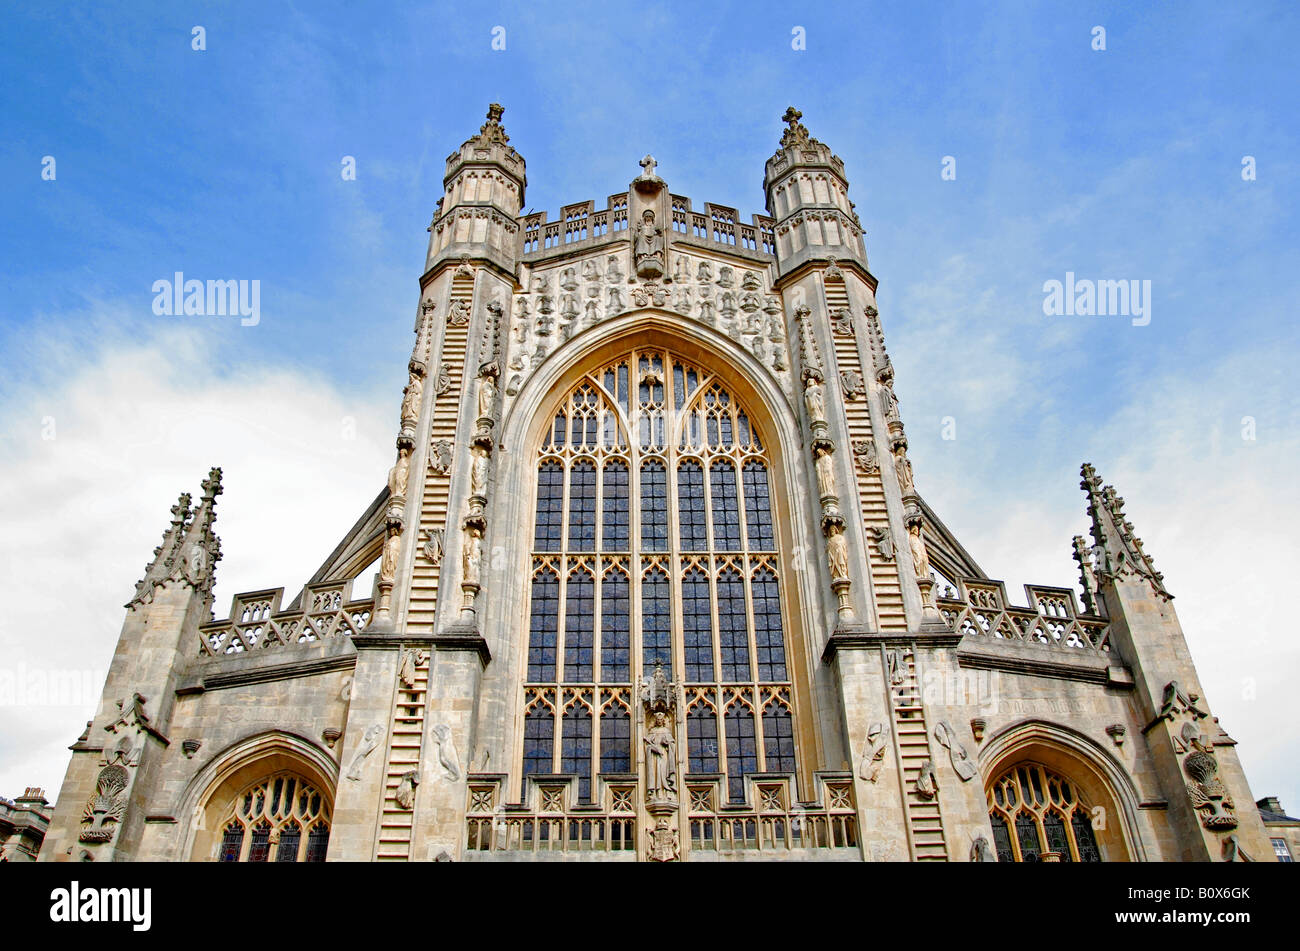 the fine architecture on the front elevation of bath abbey,somerset,england - Stock Image